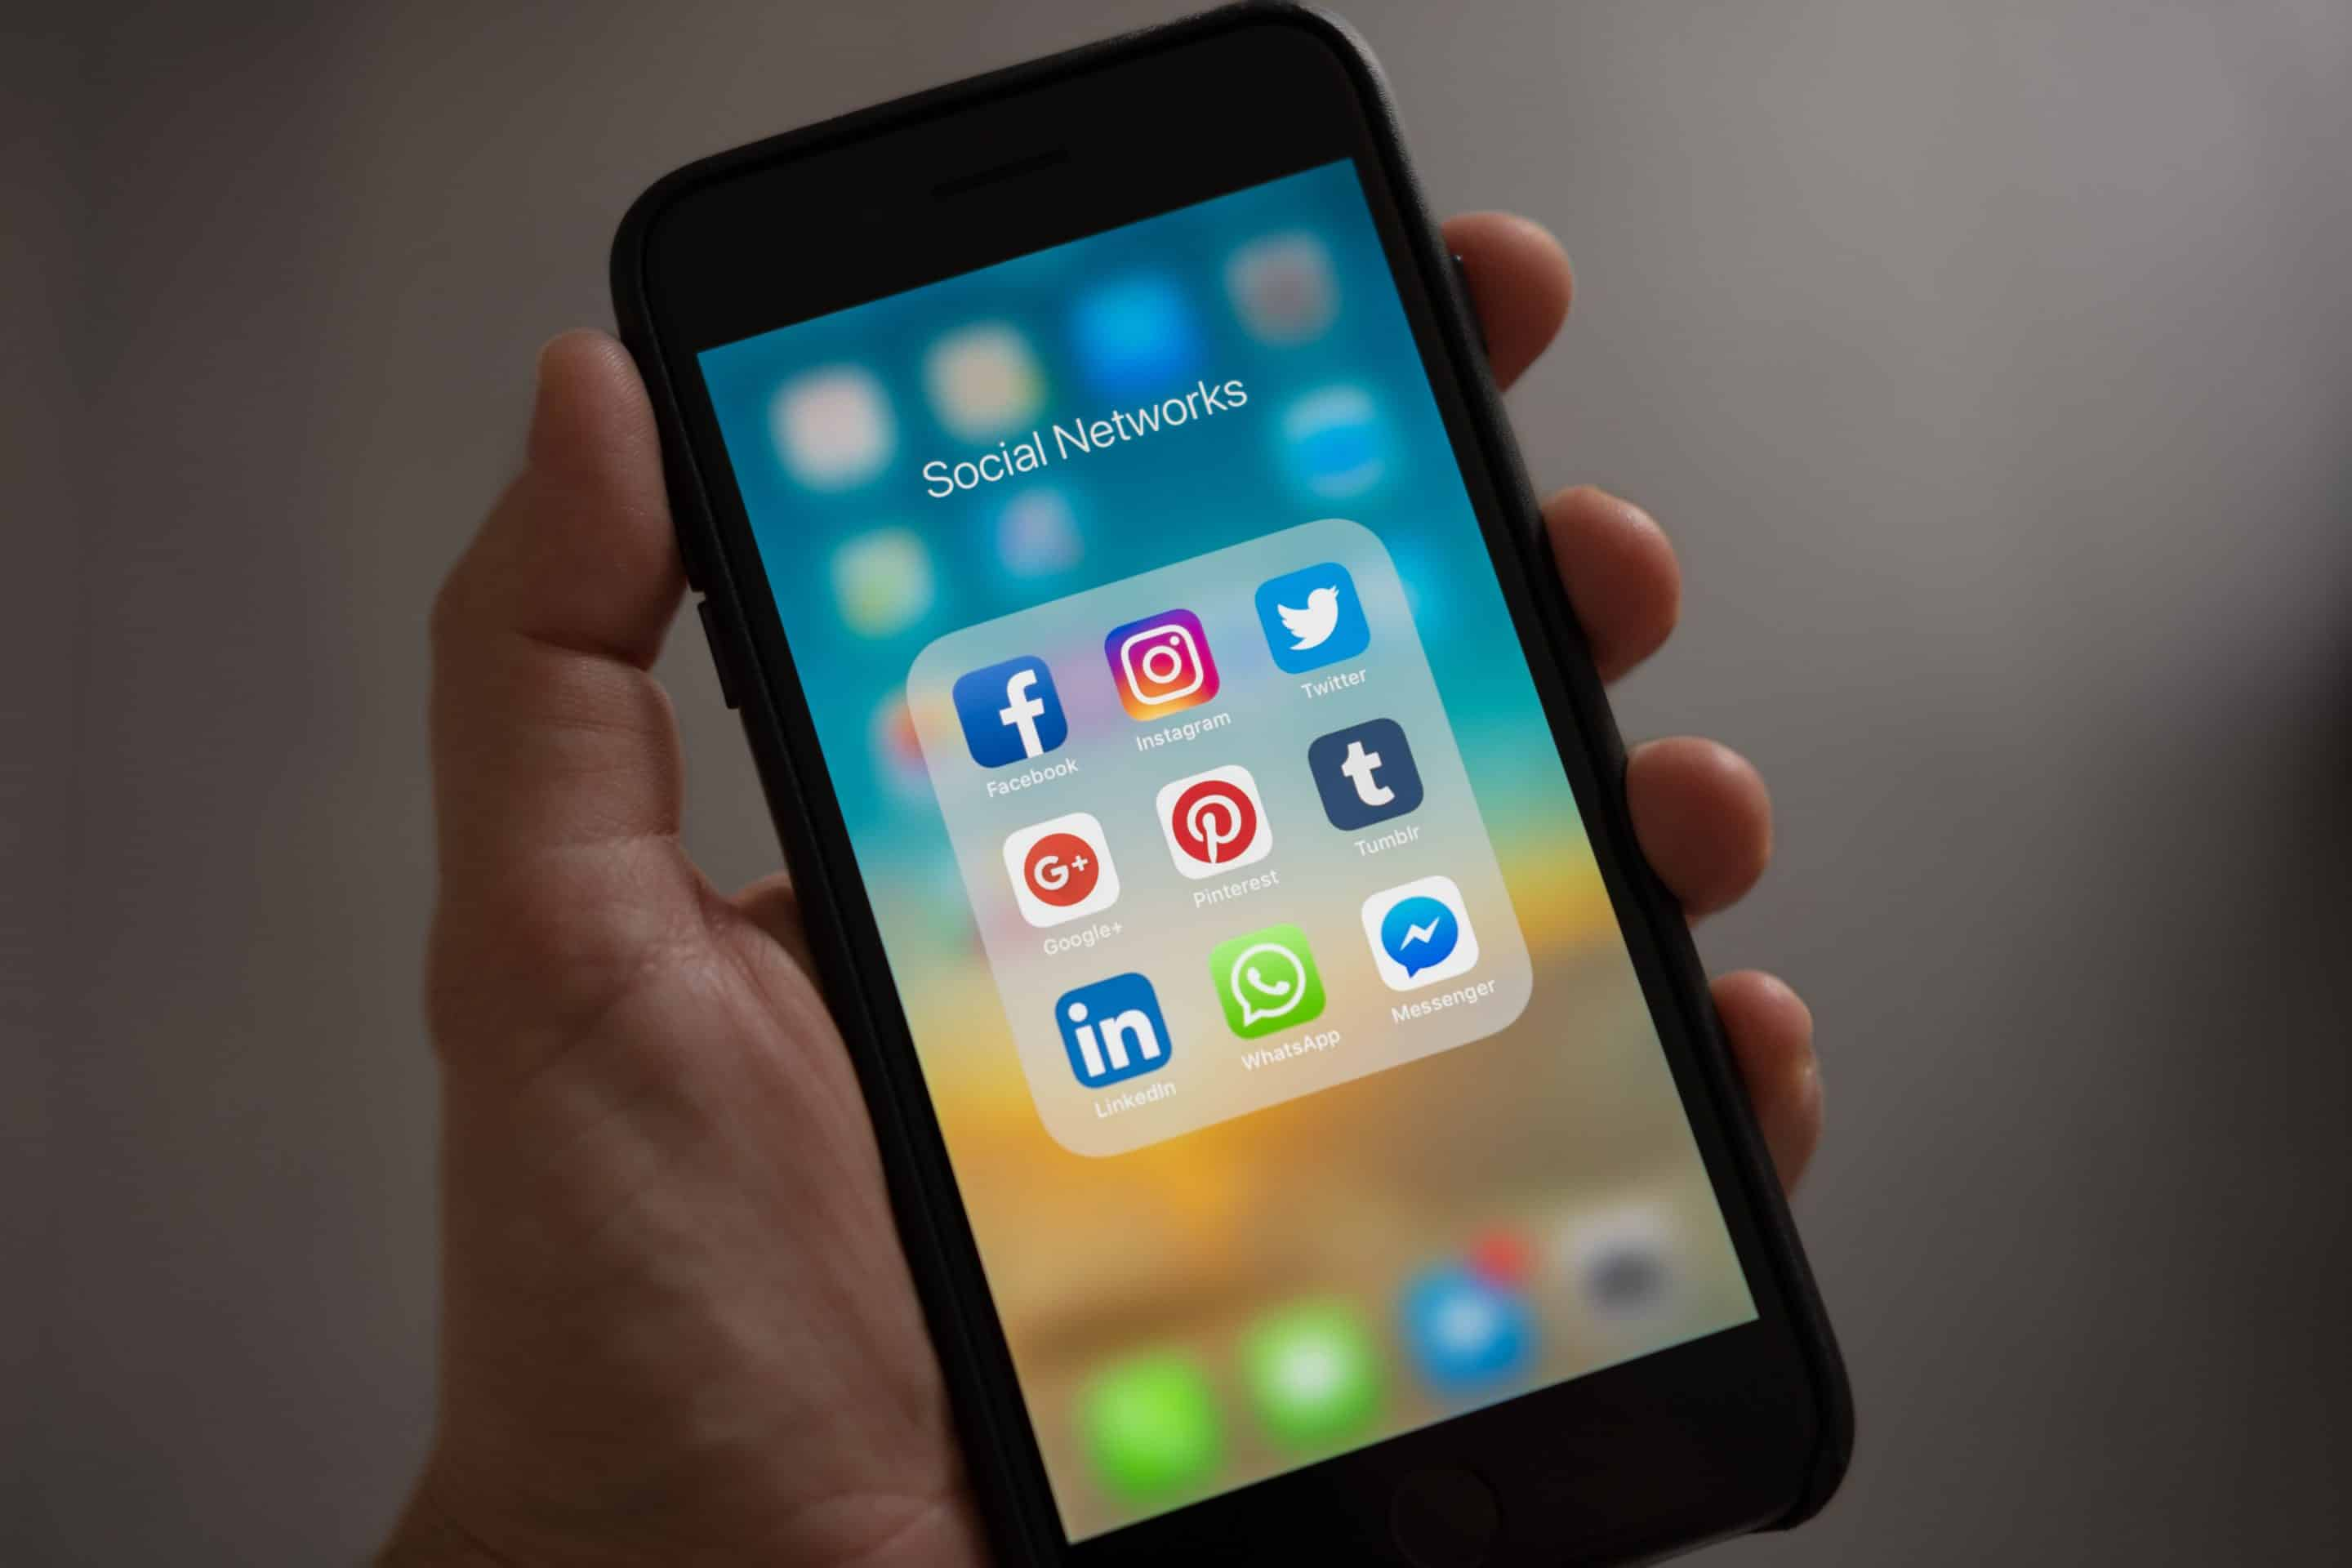 social media applications on a smartphone